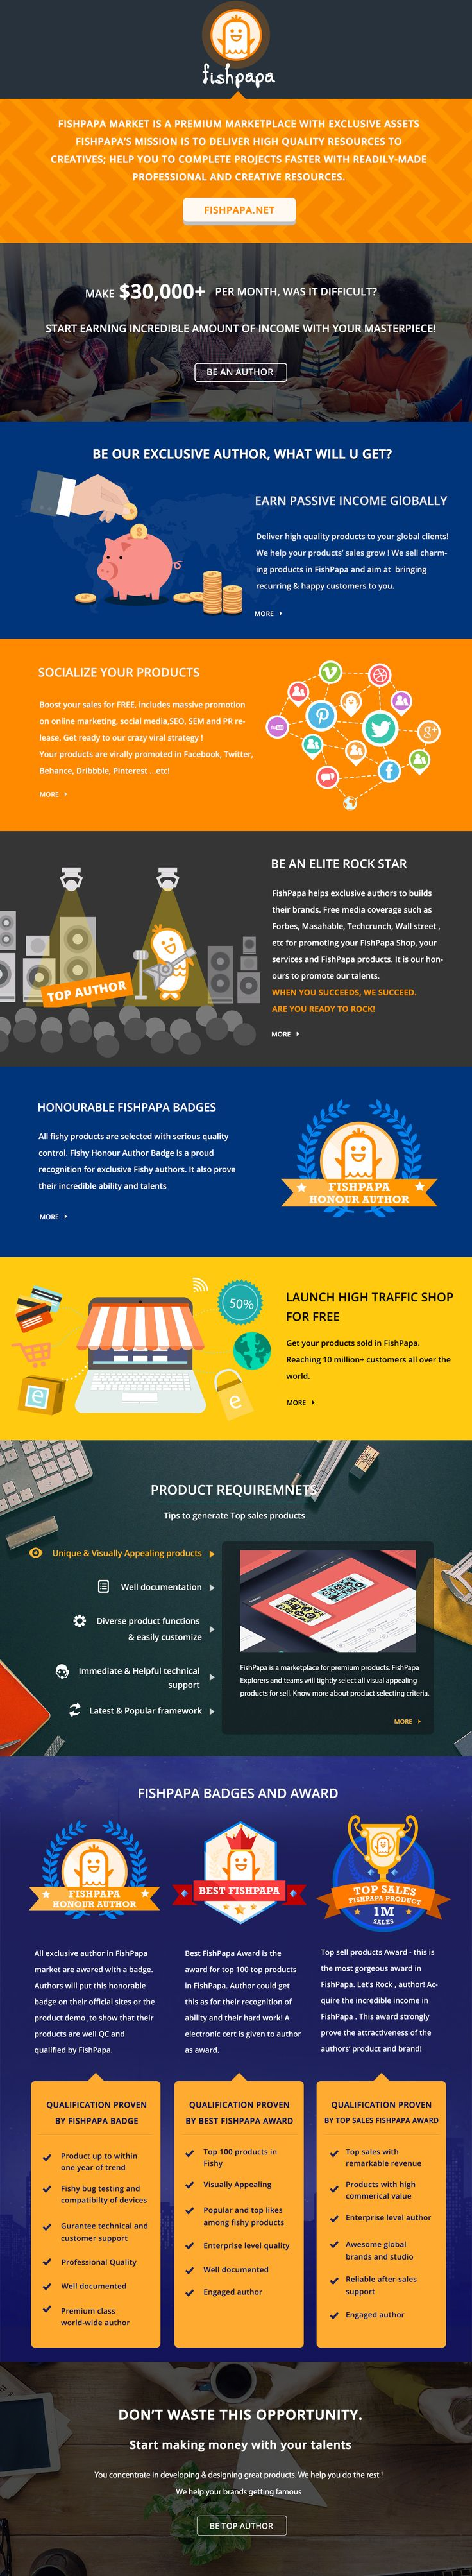 Become FishPapa Authors can gain passive income with your masterpieces! FishPapa is a creative community with strong creatives' work. Simple registration and upload your products! We are now welcomes to all web template works and products. Find us from the following website. #webtemplate #website #webdesign #websiteresources #creativedesign #webdesigninspiration